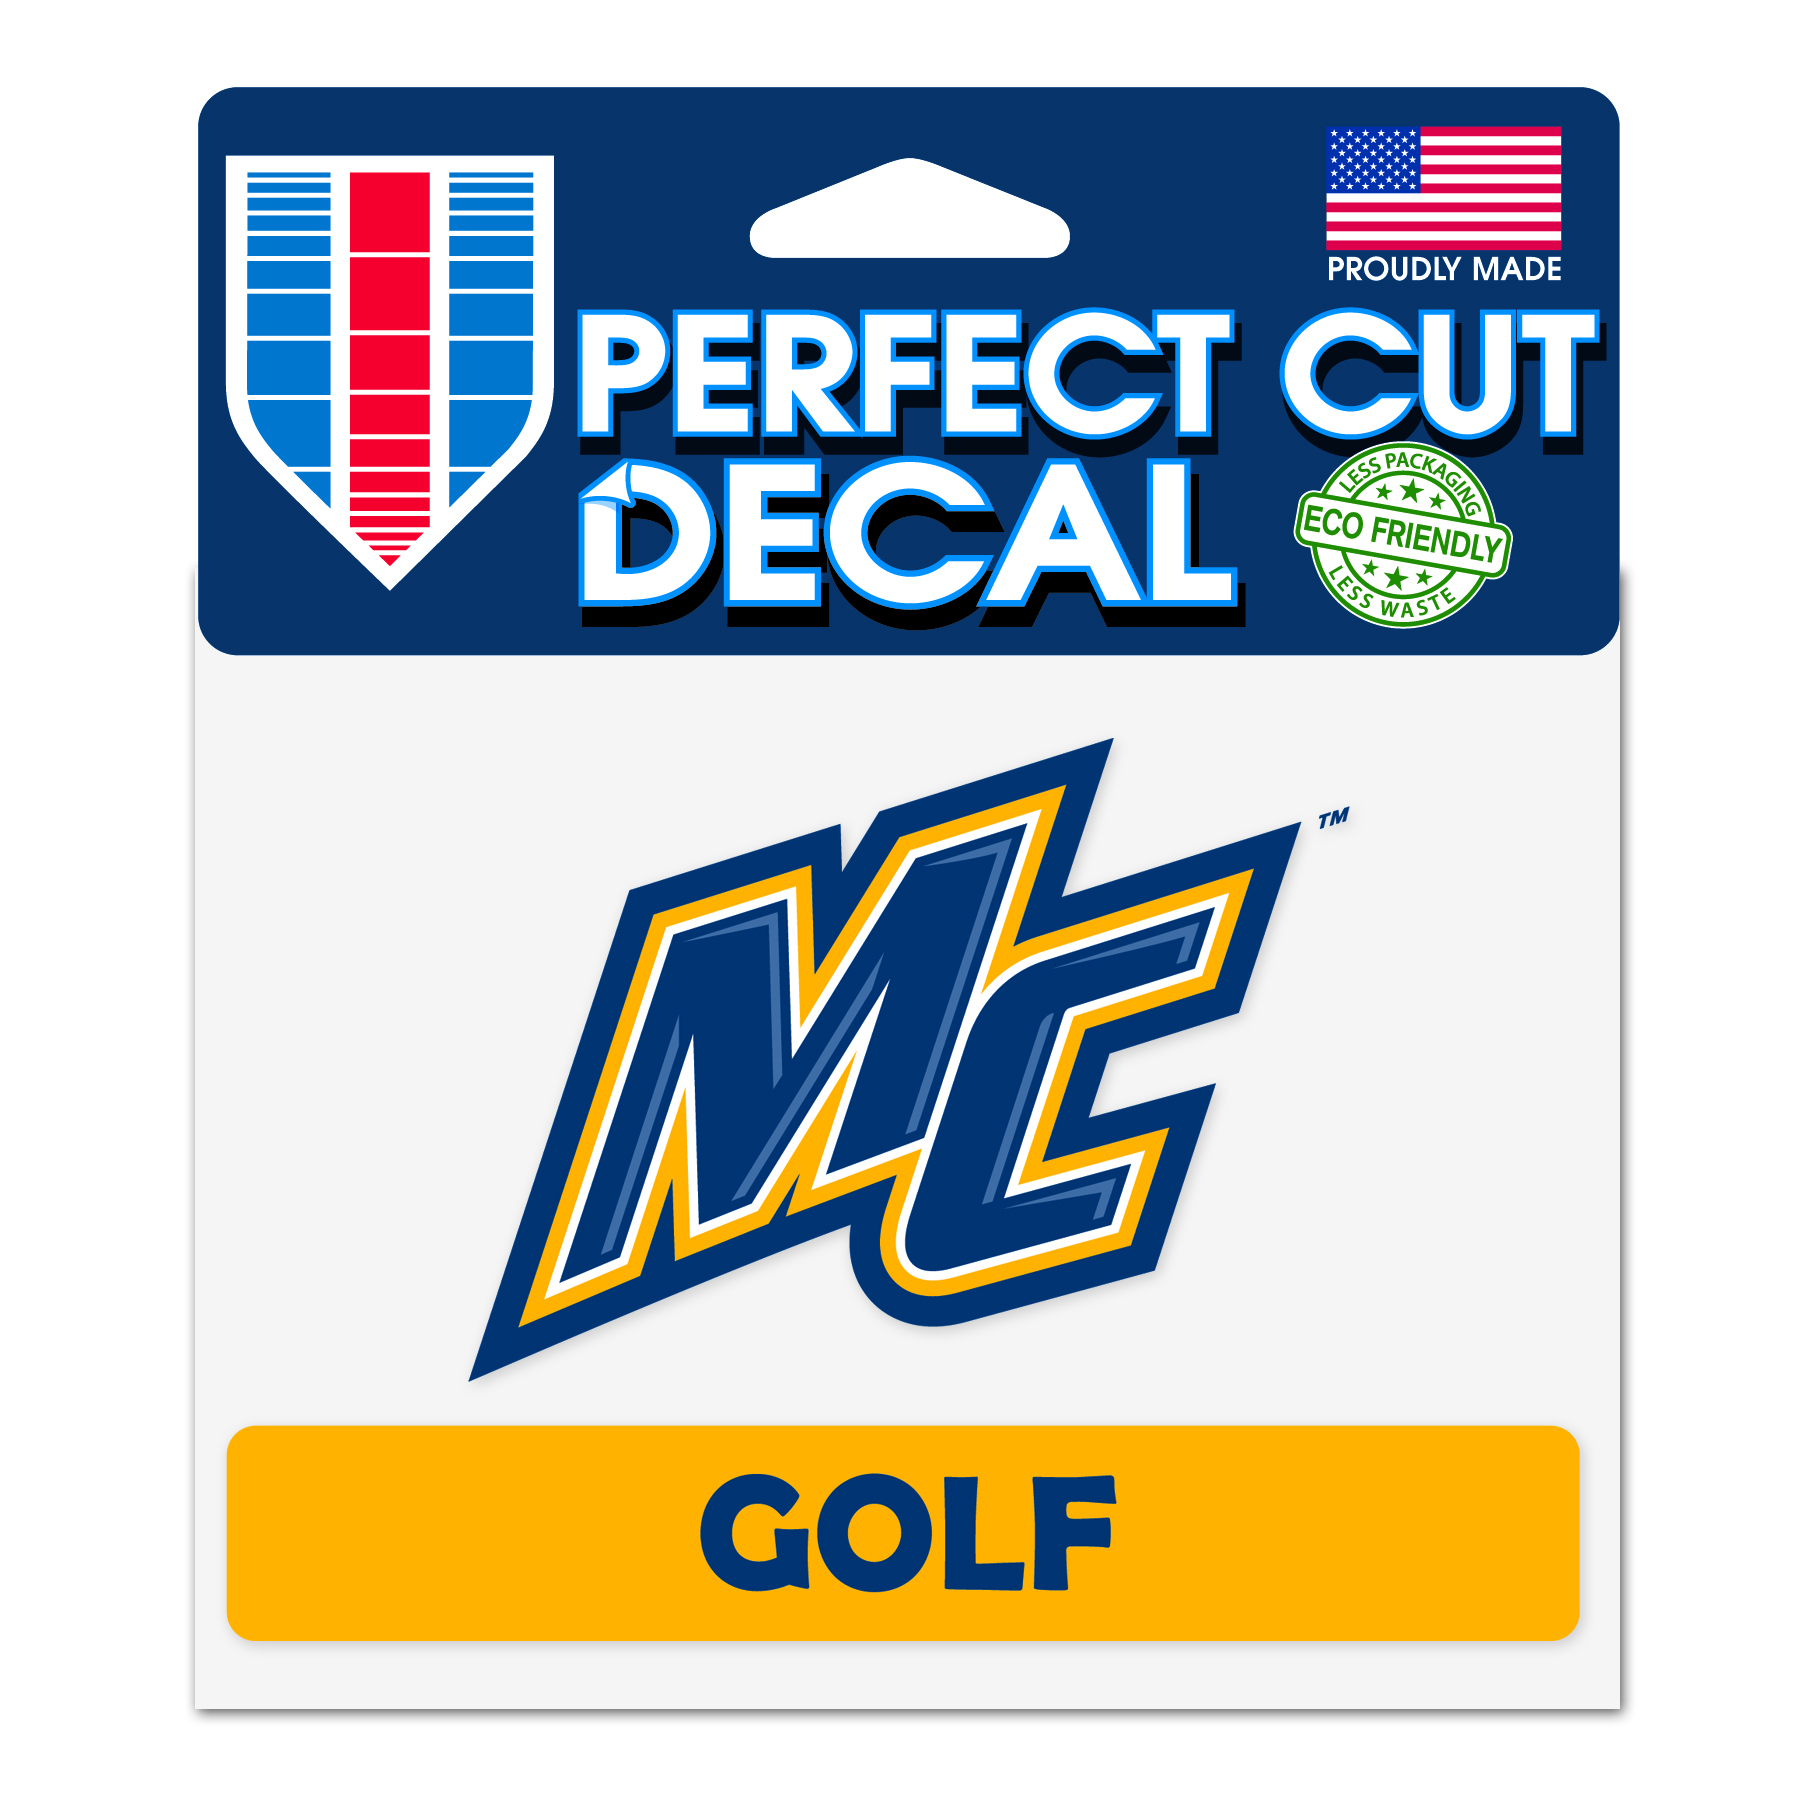 Decal - Golf